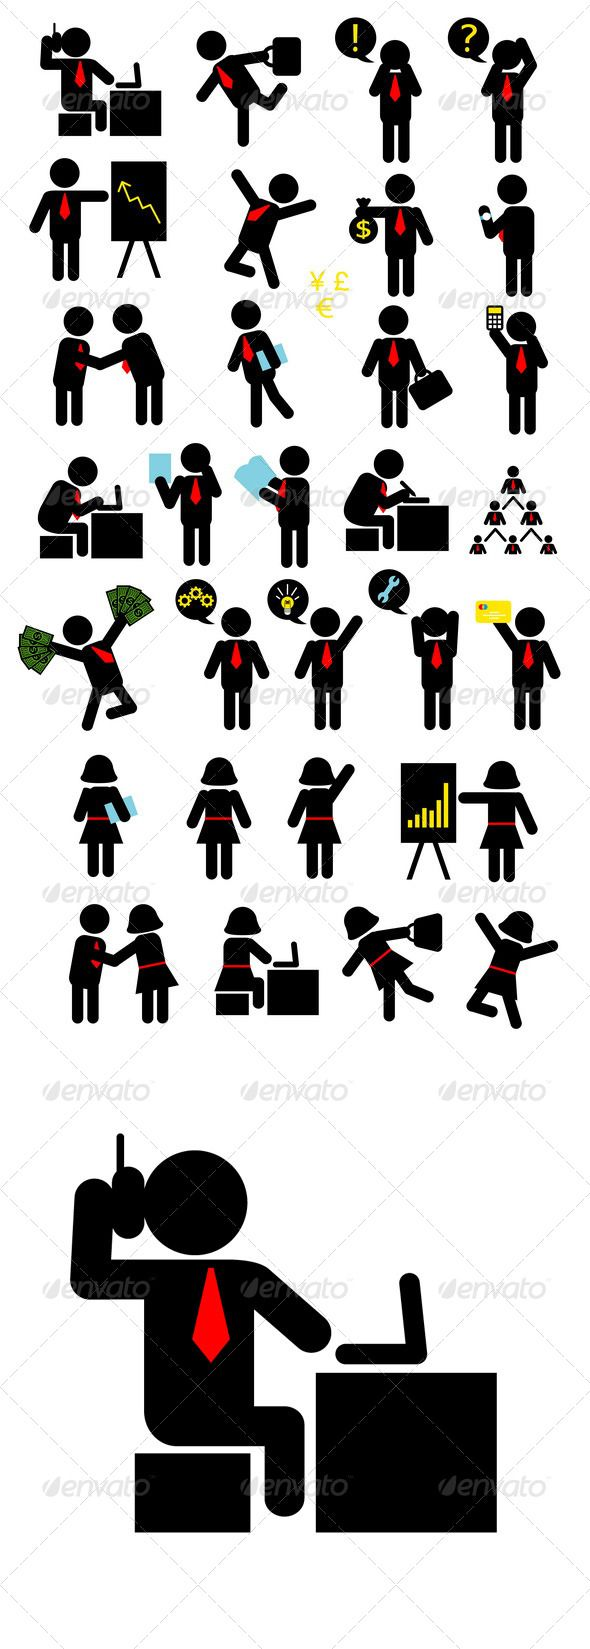 Business Pictogram Icons #GraphicRiver Businessman and business woman activity pictogram. ZIP included : .AI rgb, .EPS cmyk (each object is a group), .JPG high resolution, and PNG transparent background. Good use for symbol, web icon, logo, sticker design, or any design you want. Easy to use or edit. You can edit vector files : AI or EPS with Adobe Illustrator or any support vector program. Don't forget to rate if you